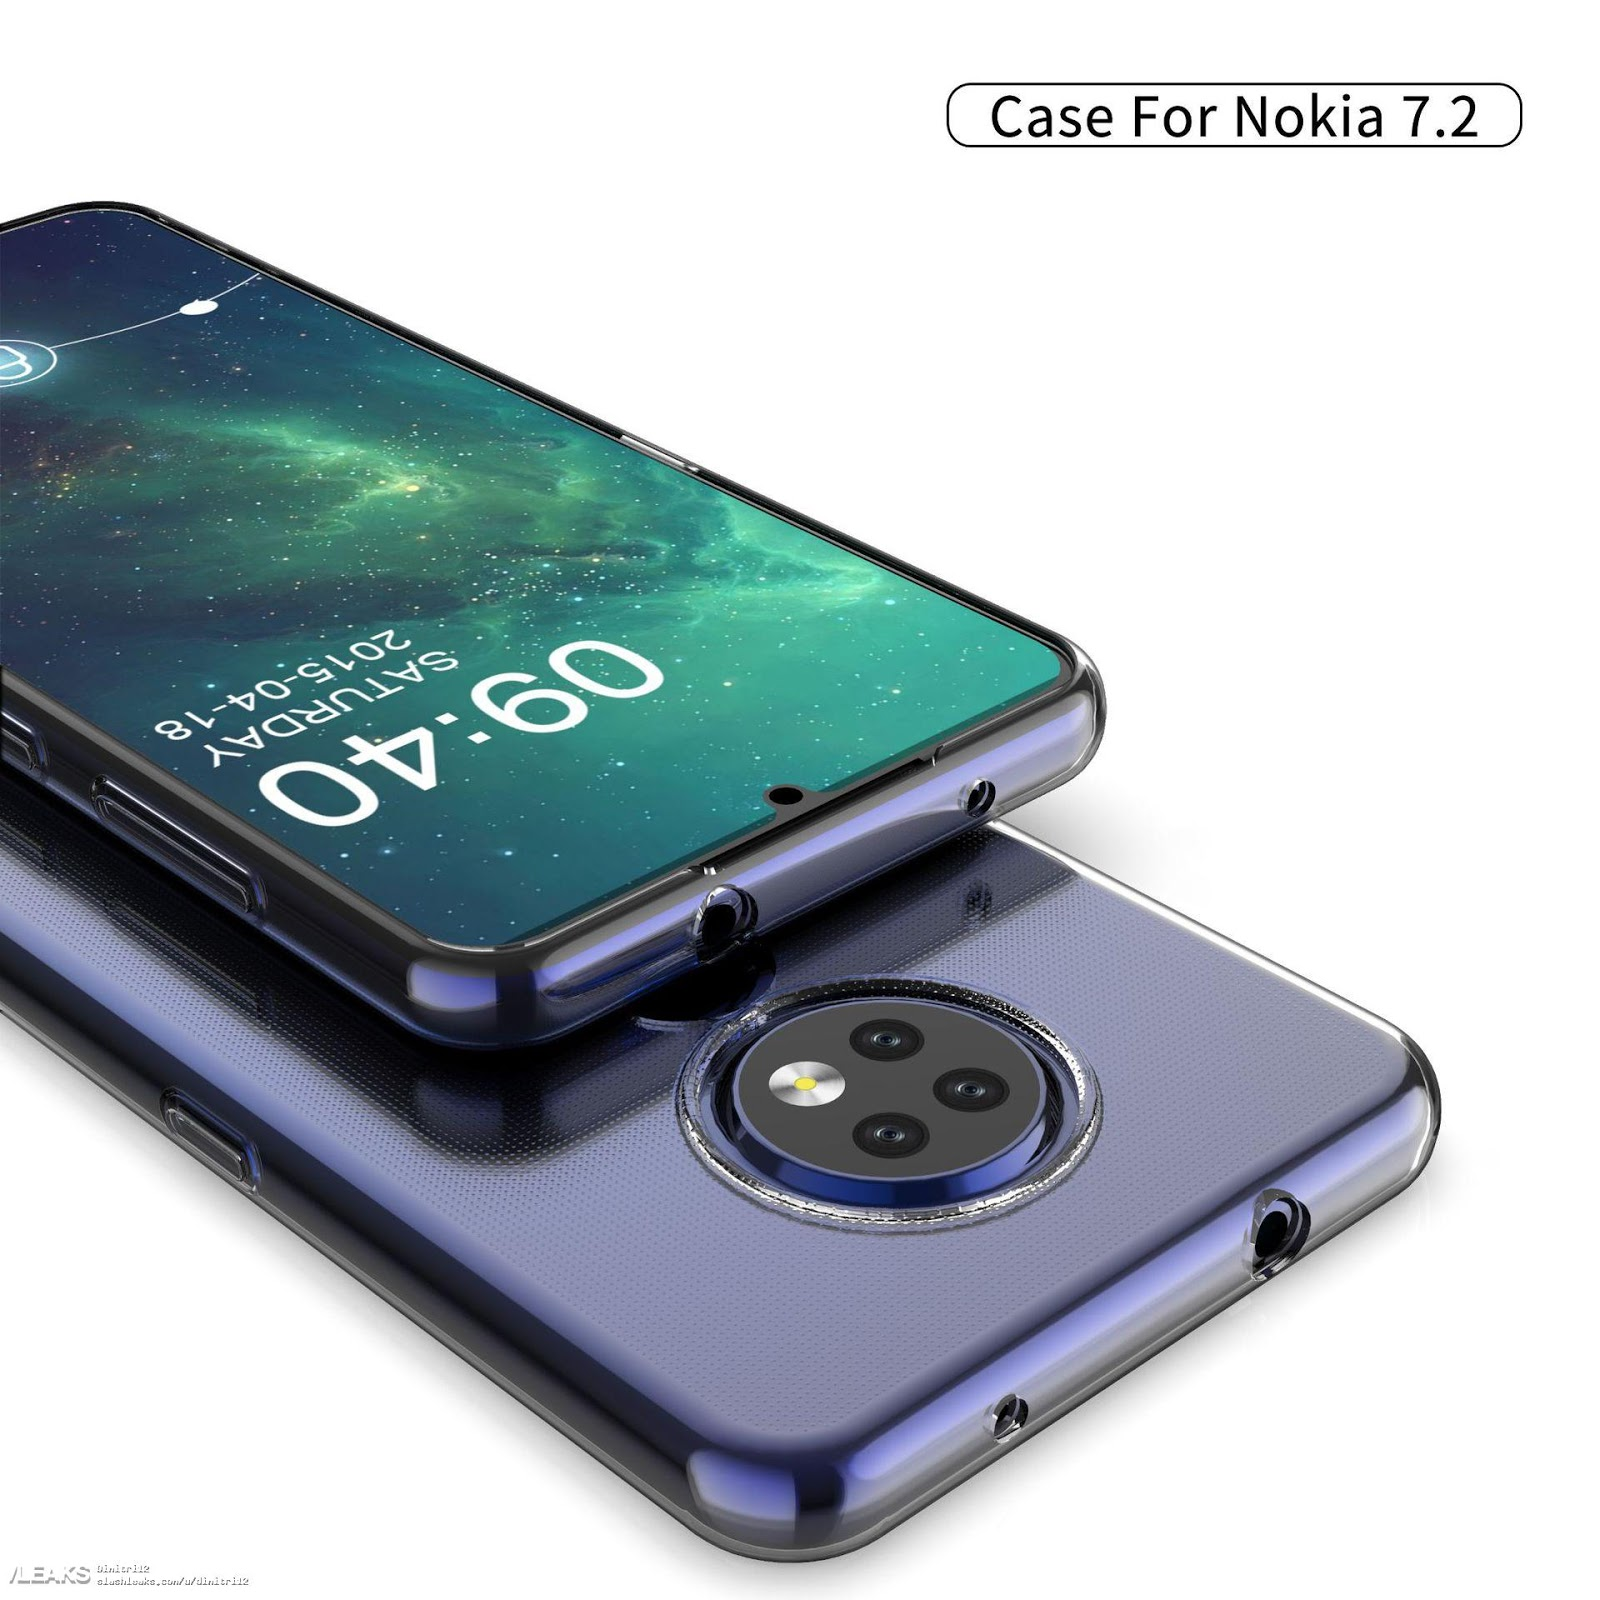 Rumour | Nokia Mobile to launch Nokia 5 2, 6 2, 7 2 and